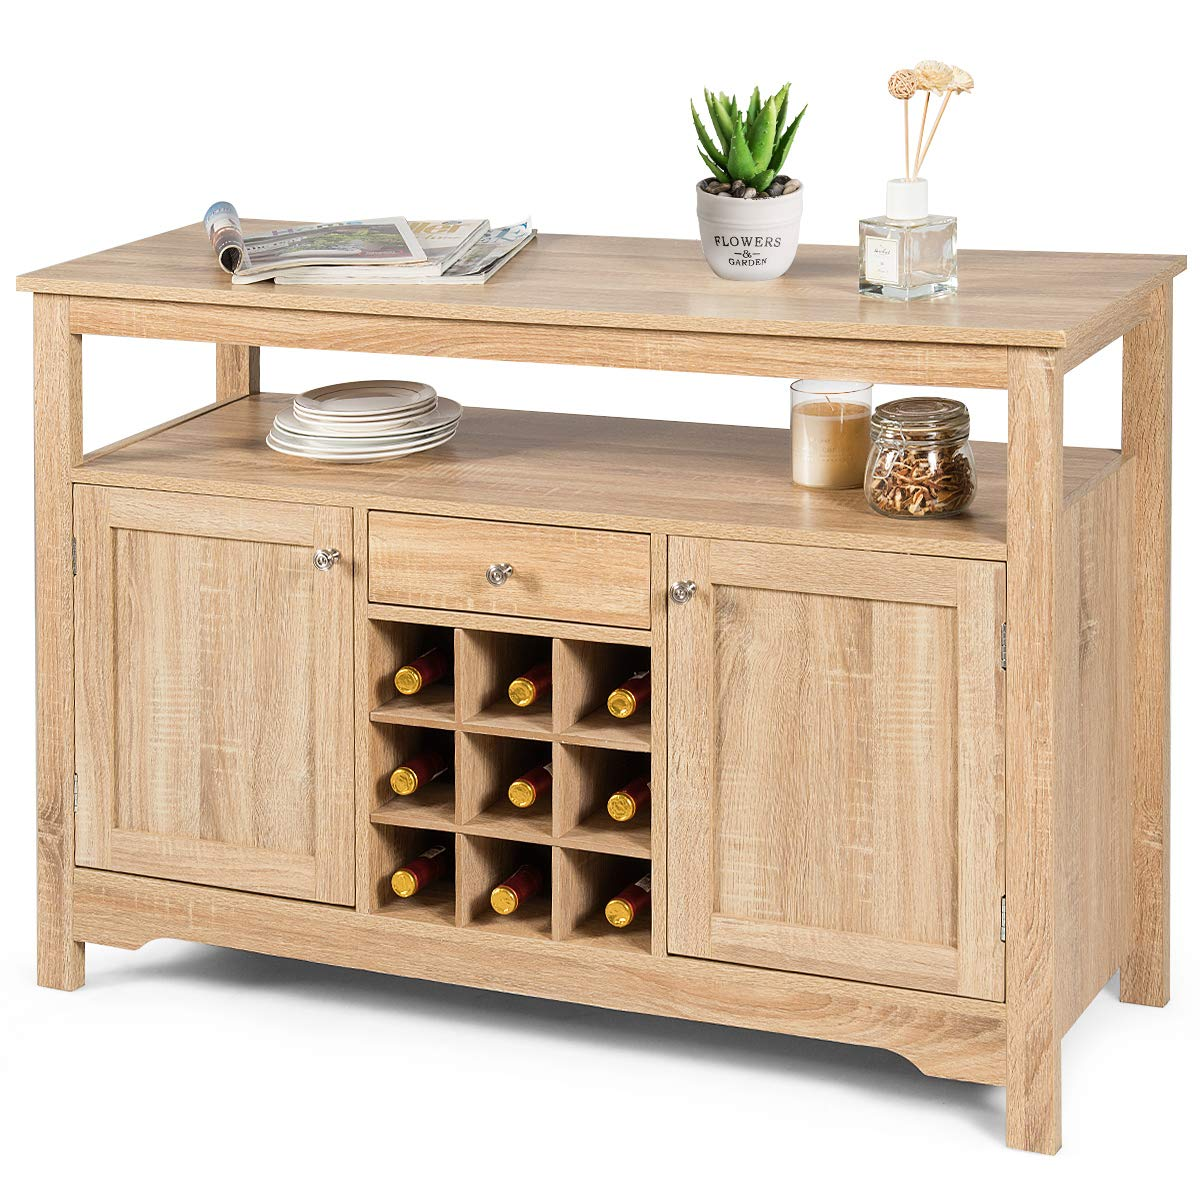 1 Drawer and 9 Wine Cabinets Wood Dining Table Console Table Cupboard Table with 2 Cabinets Storage Organizer Kitchen and Dining Room Giantex Buffet Server Sideboard Natural